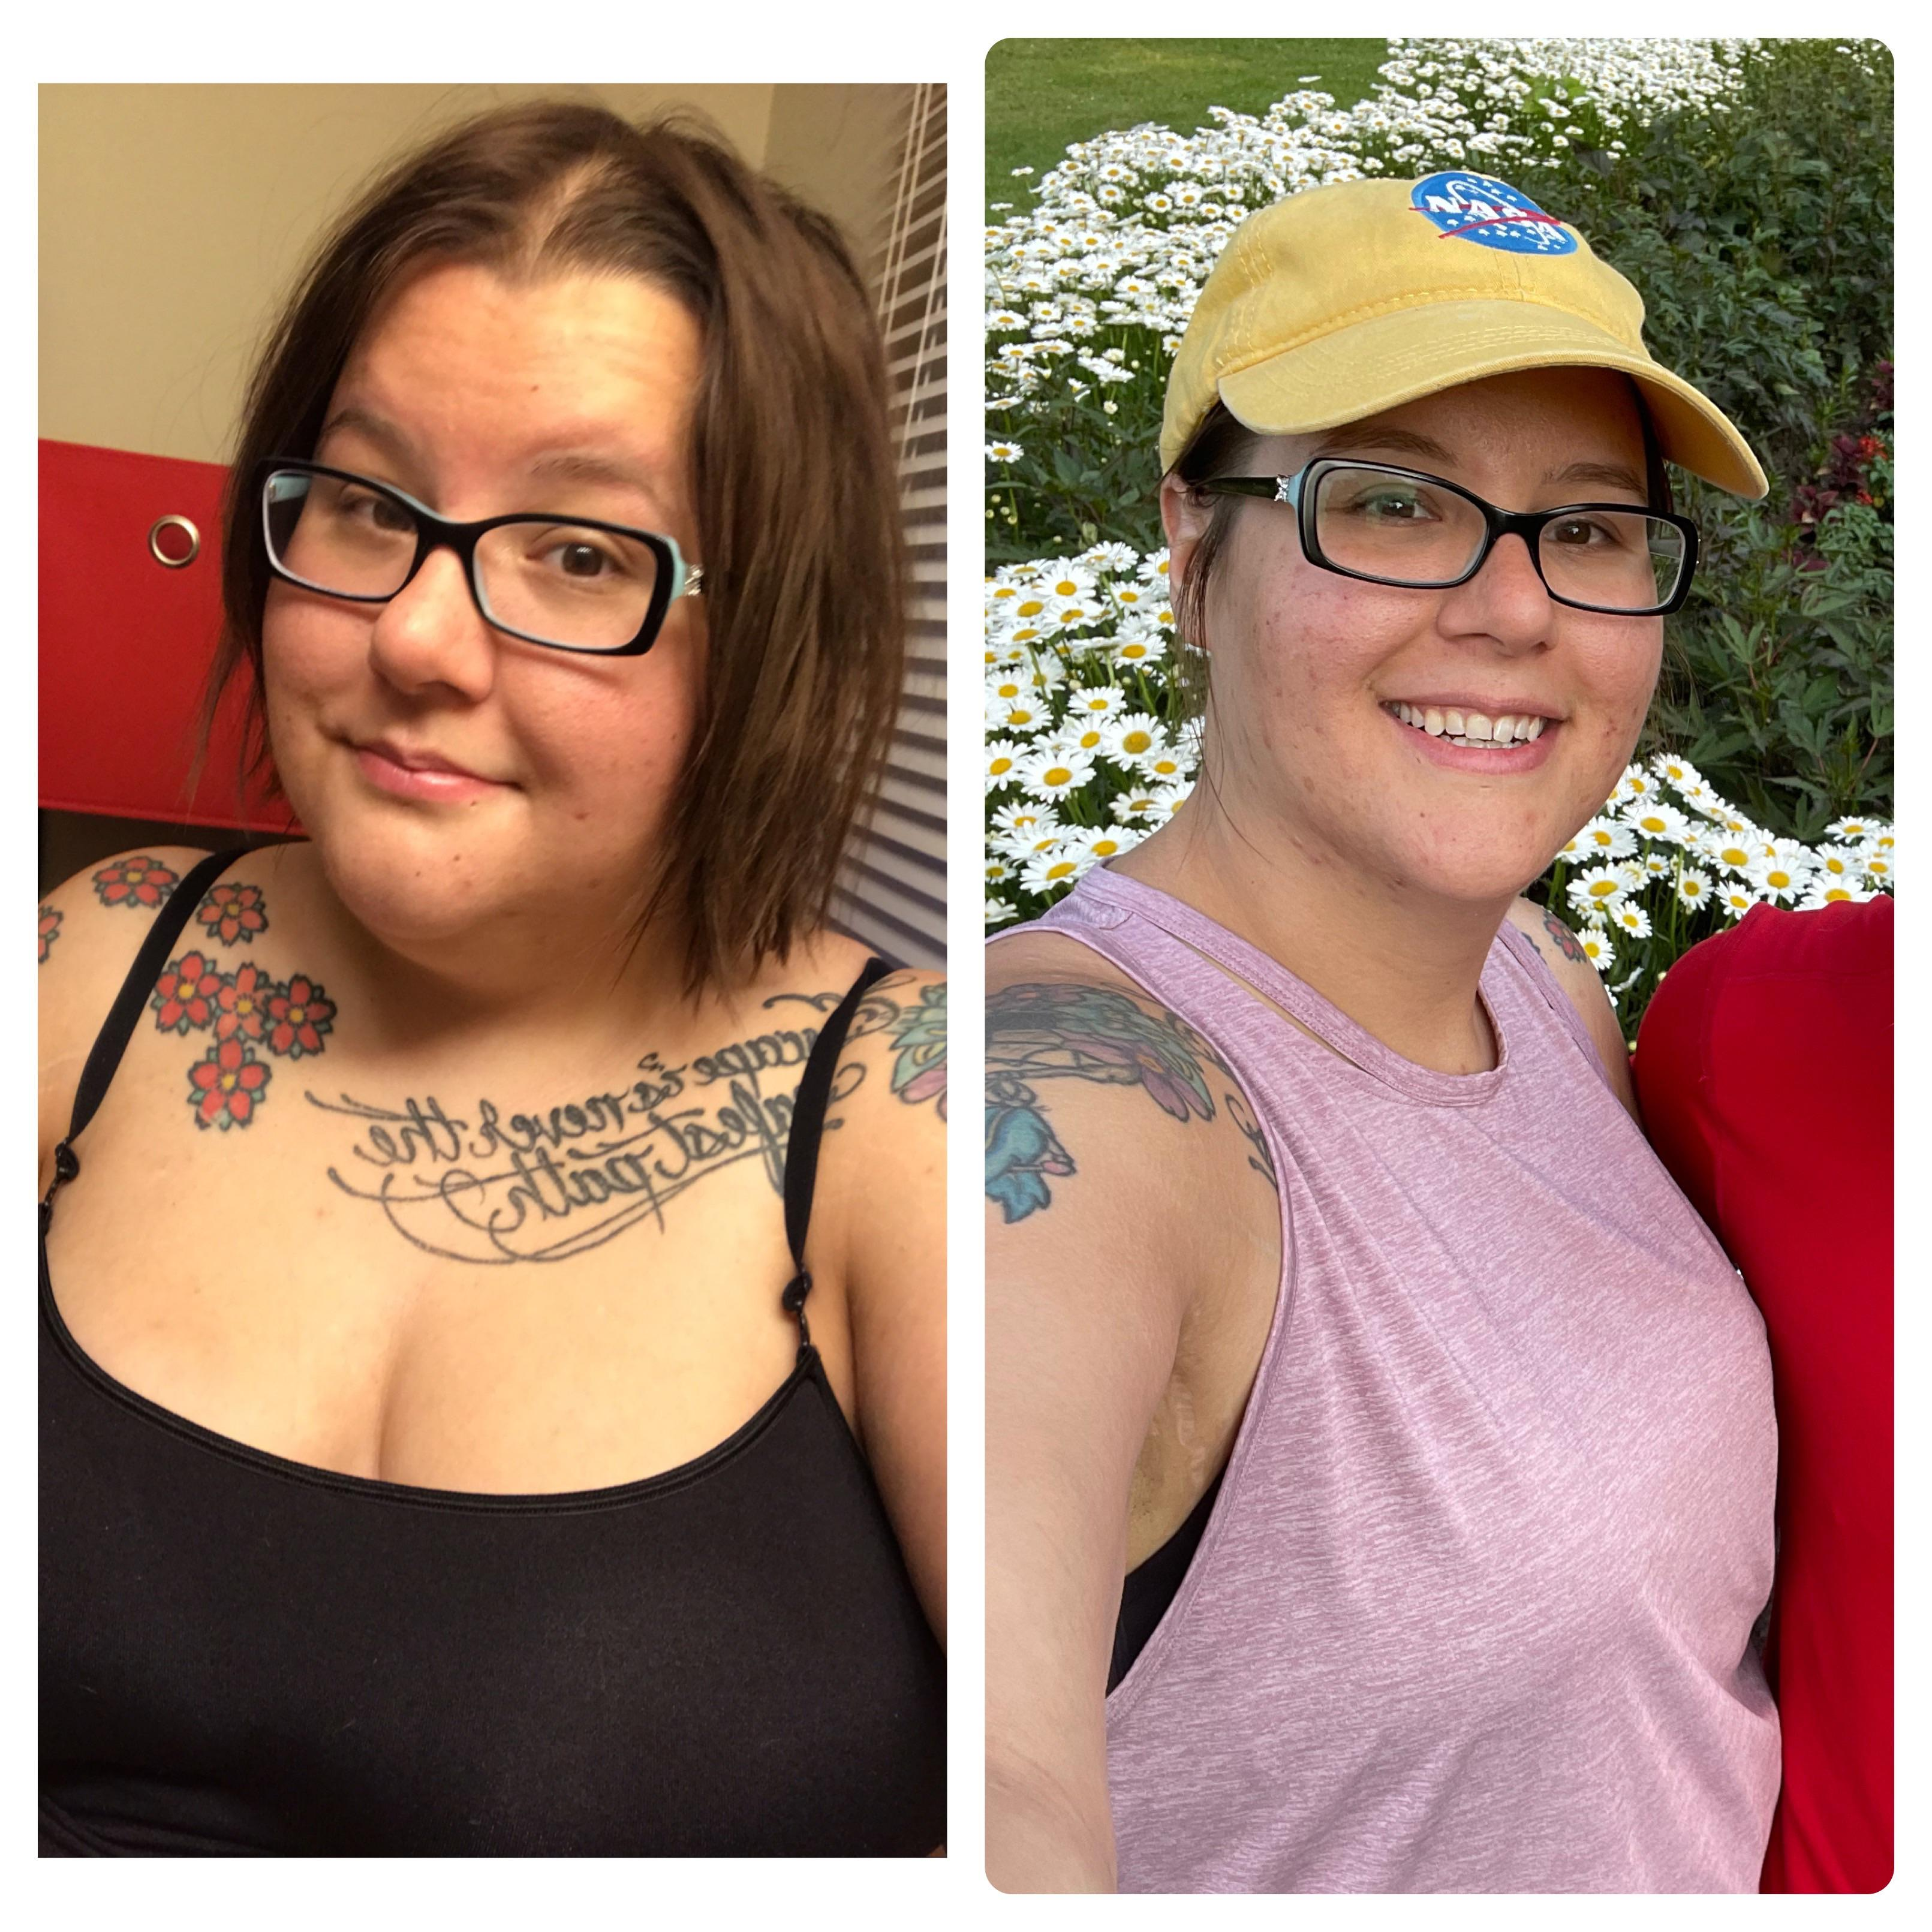 5 foot 11 Female 93 lbs Weight Loss Before and After 290 lbs to 197 lbs